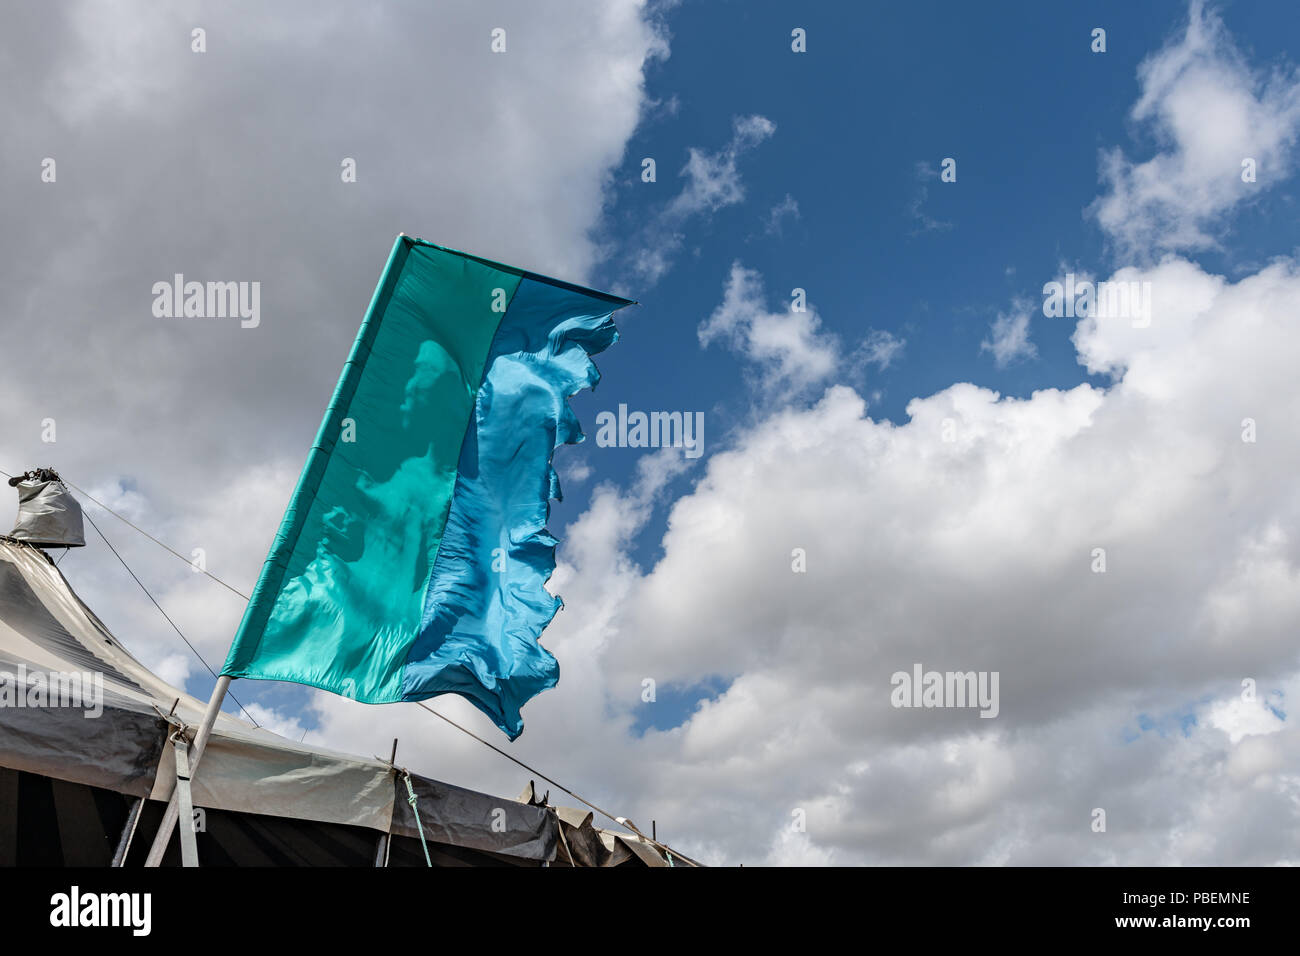 Poole, UK. 28th July 2018. Very windy weather at the Poole Harbour Festival in very windy weather. Credit: Thomas Faull/Alamy Live News Stock Photo